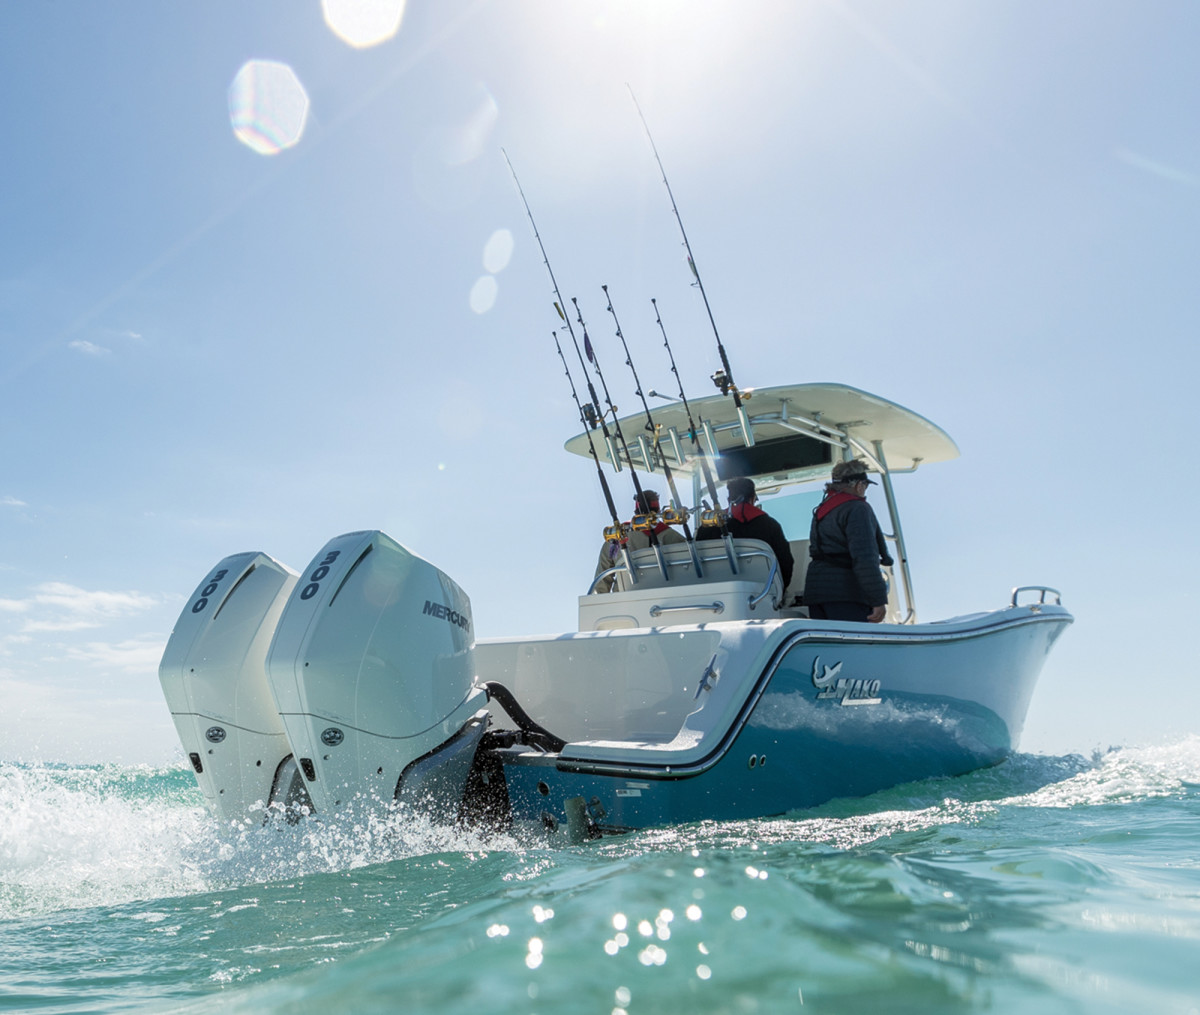 The new Mercury V-8 outboards have the narrowest profile and mount on 26-inch centers.